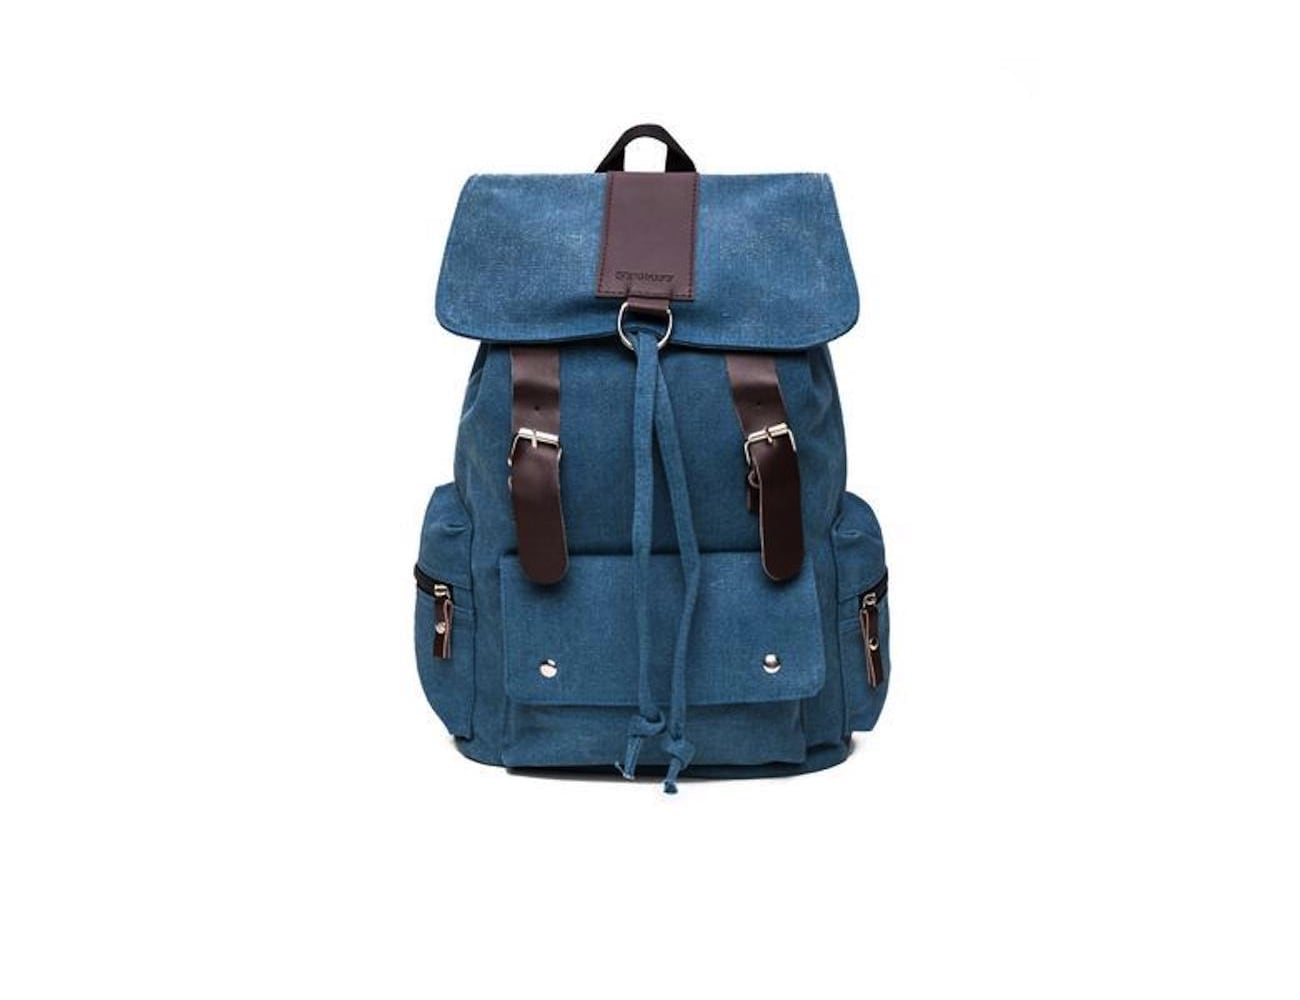 Something Strong Rocksmith Canvas Backpack